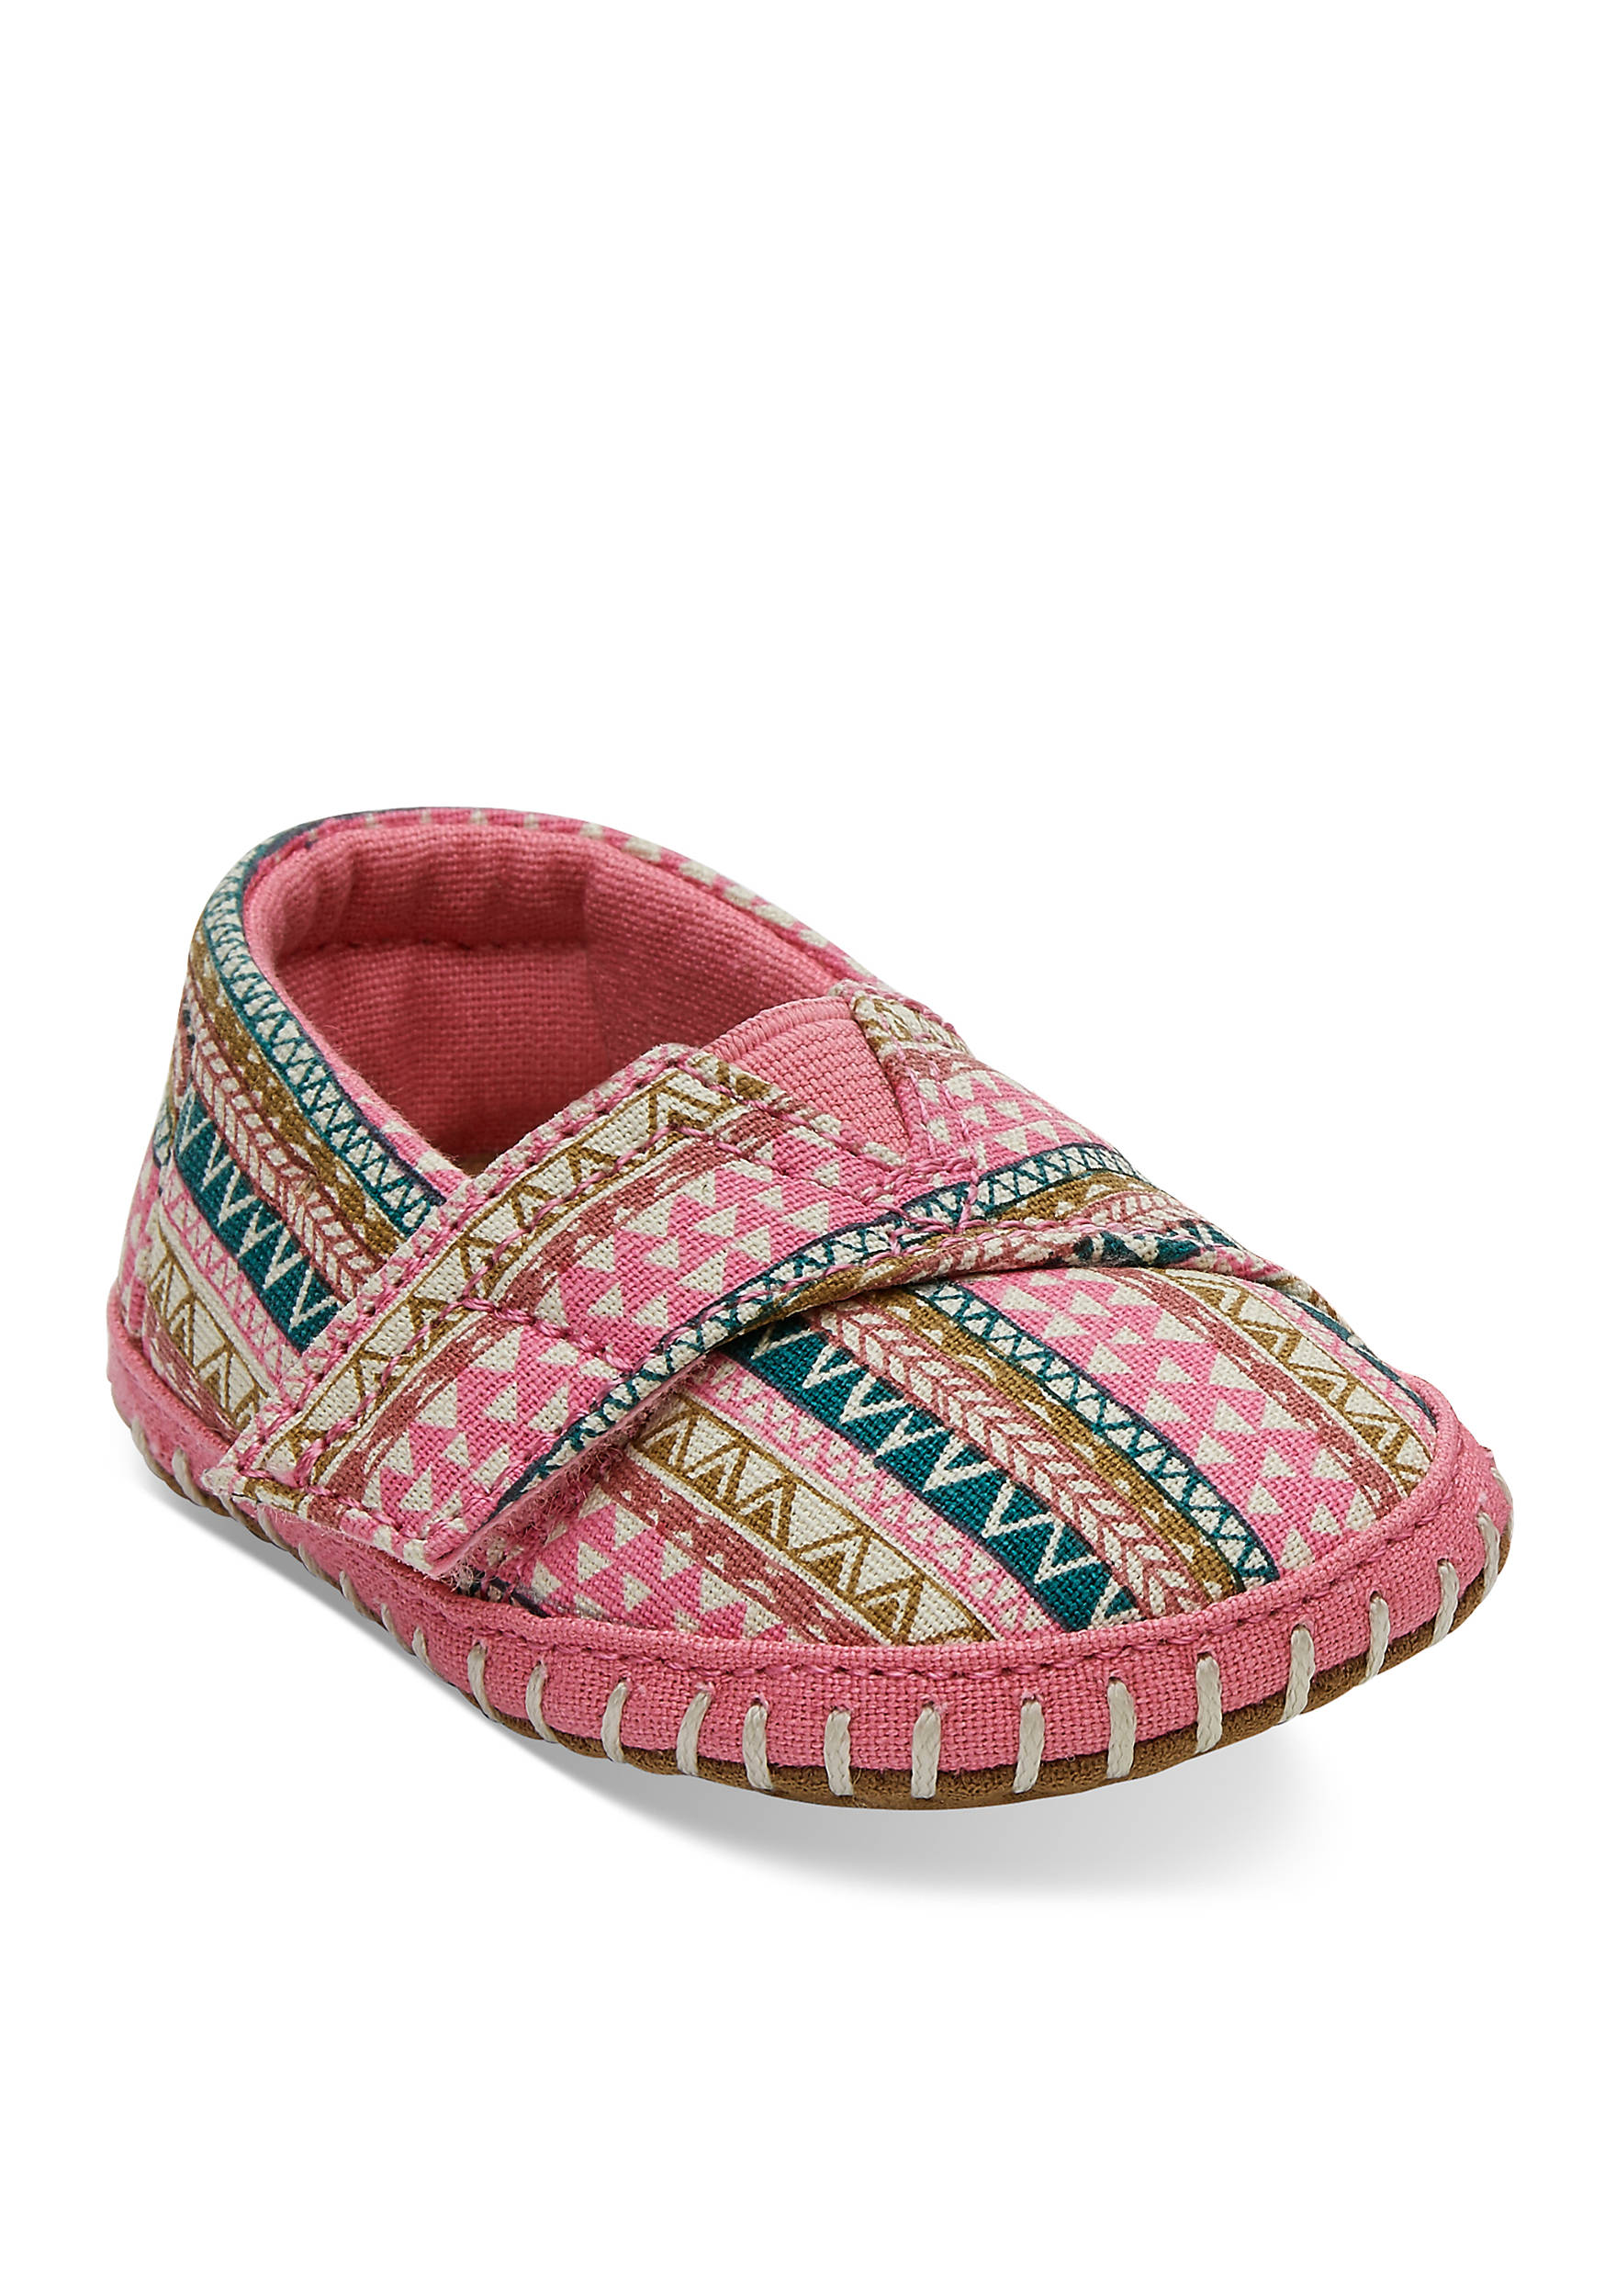 shoes toms crib slip on closure girls toddler sizes nordstrom cribs c